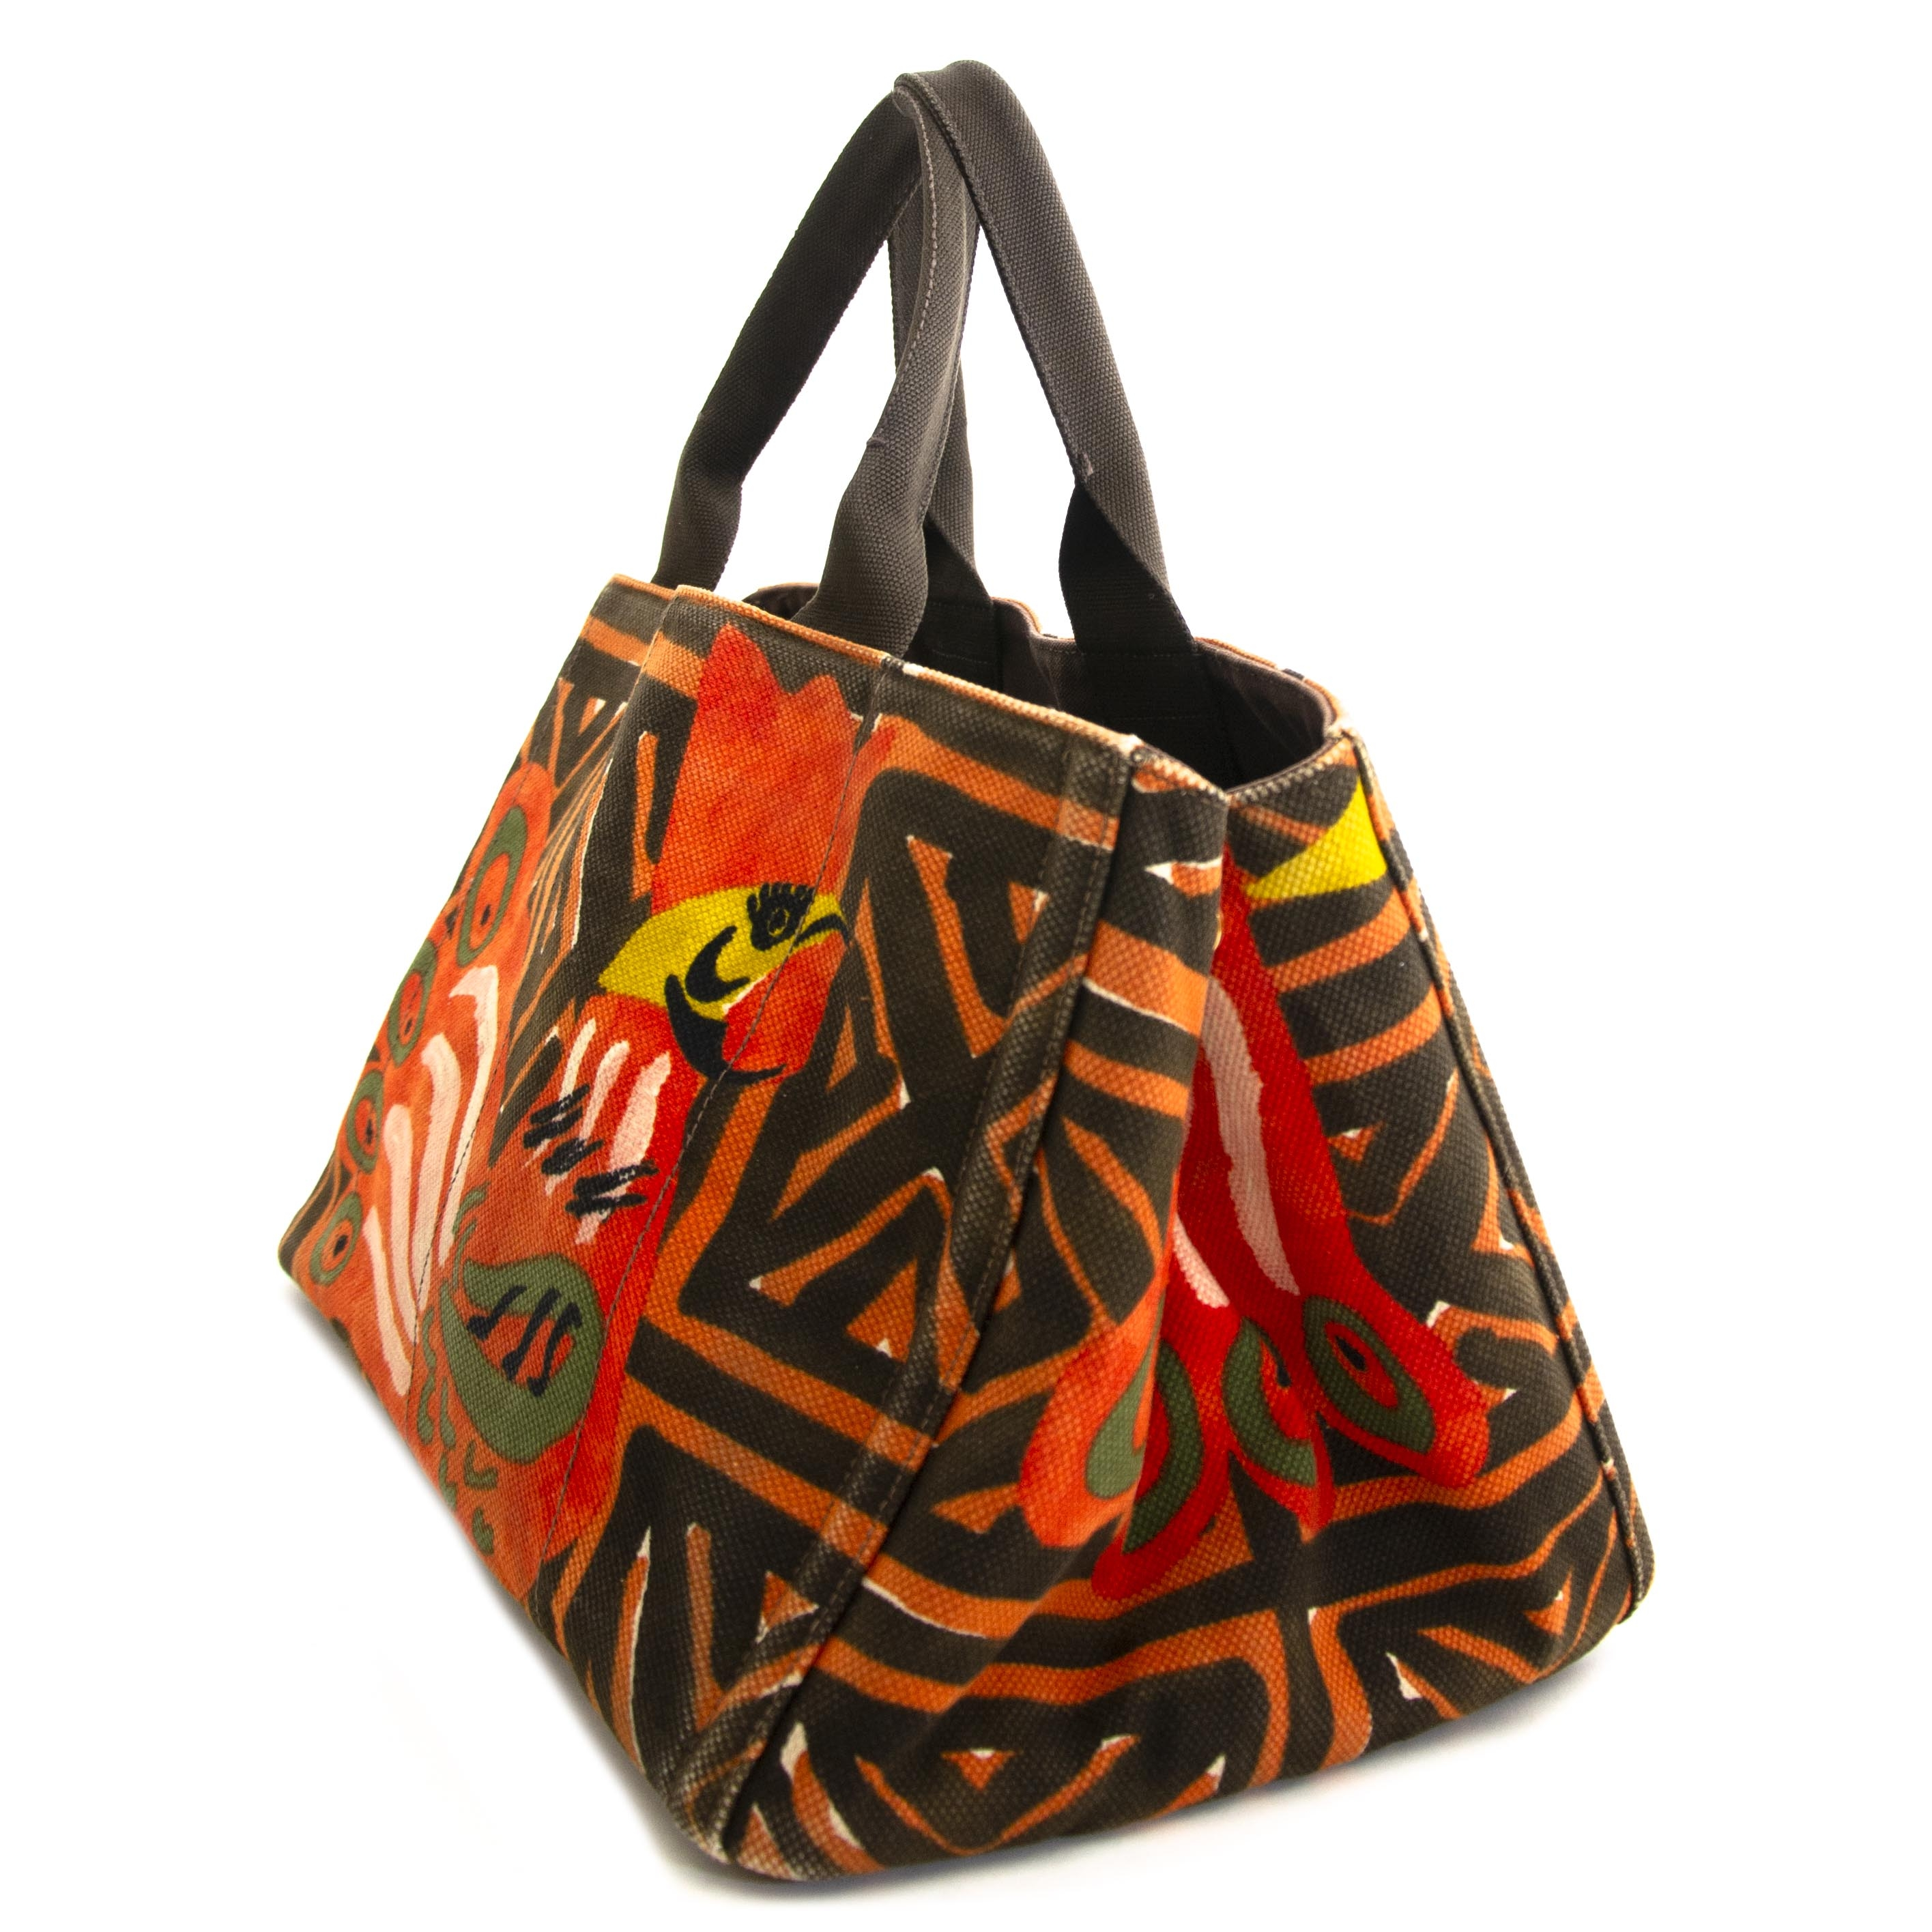 d5bde56bb6db ... Prada Multicolor Peacock Fabric Tote now for sale at labellov vintage  fashion webshop belgium